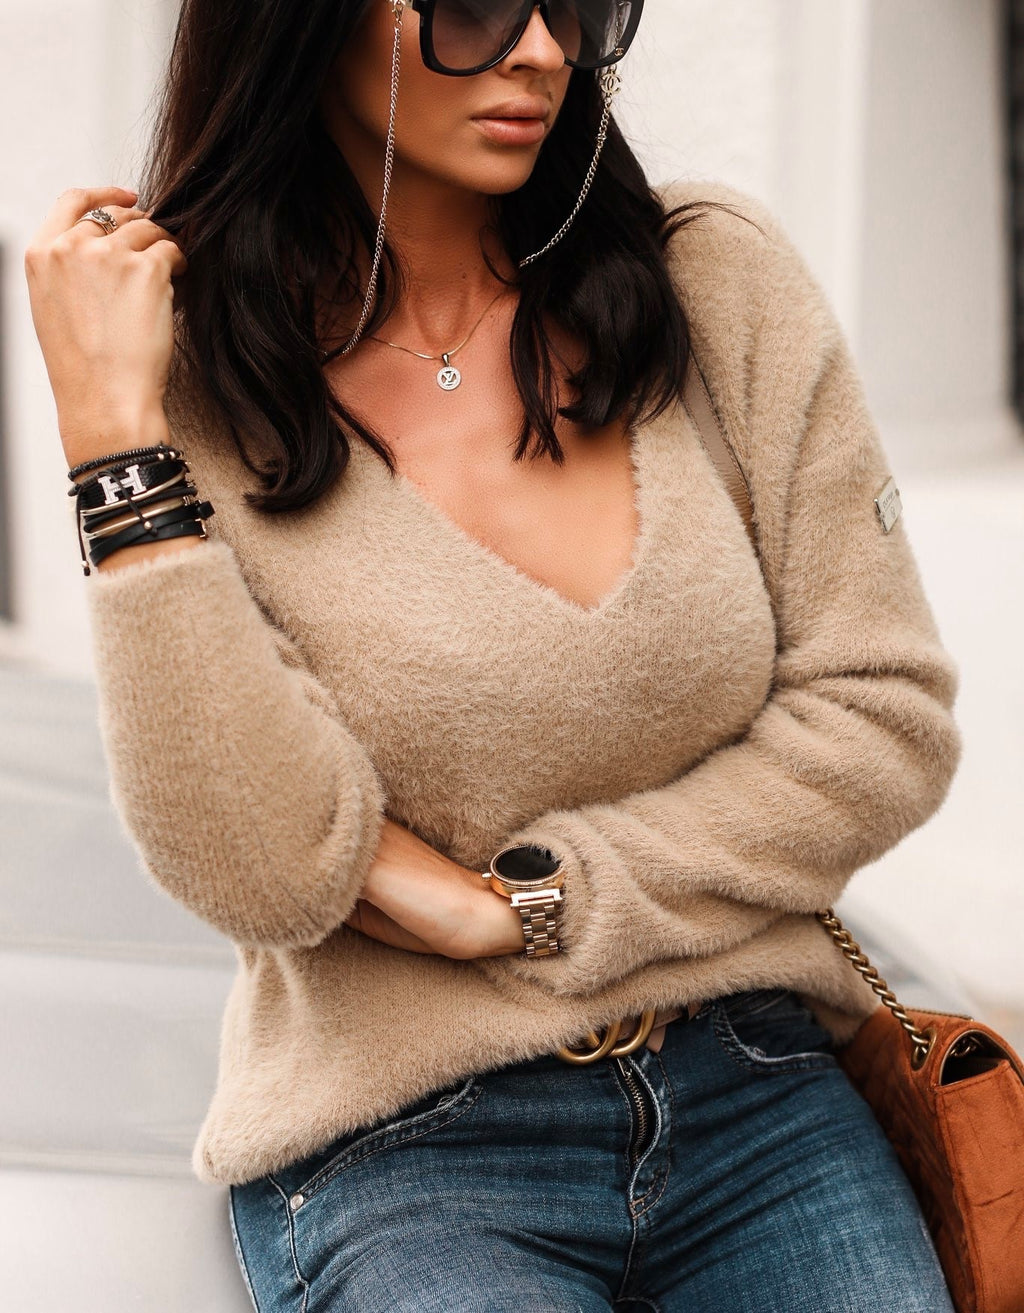 Lili Beige Sweater